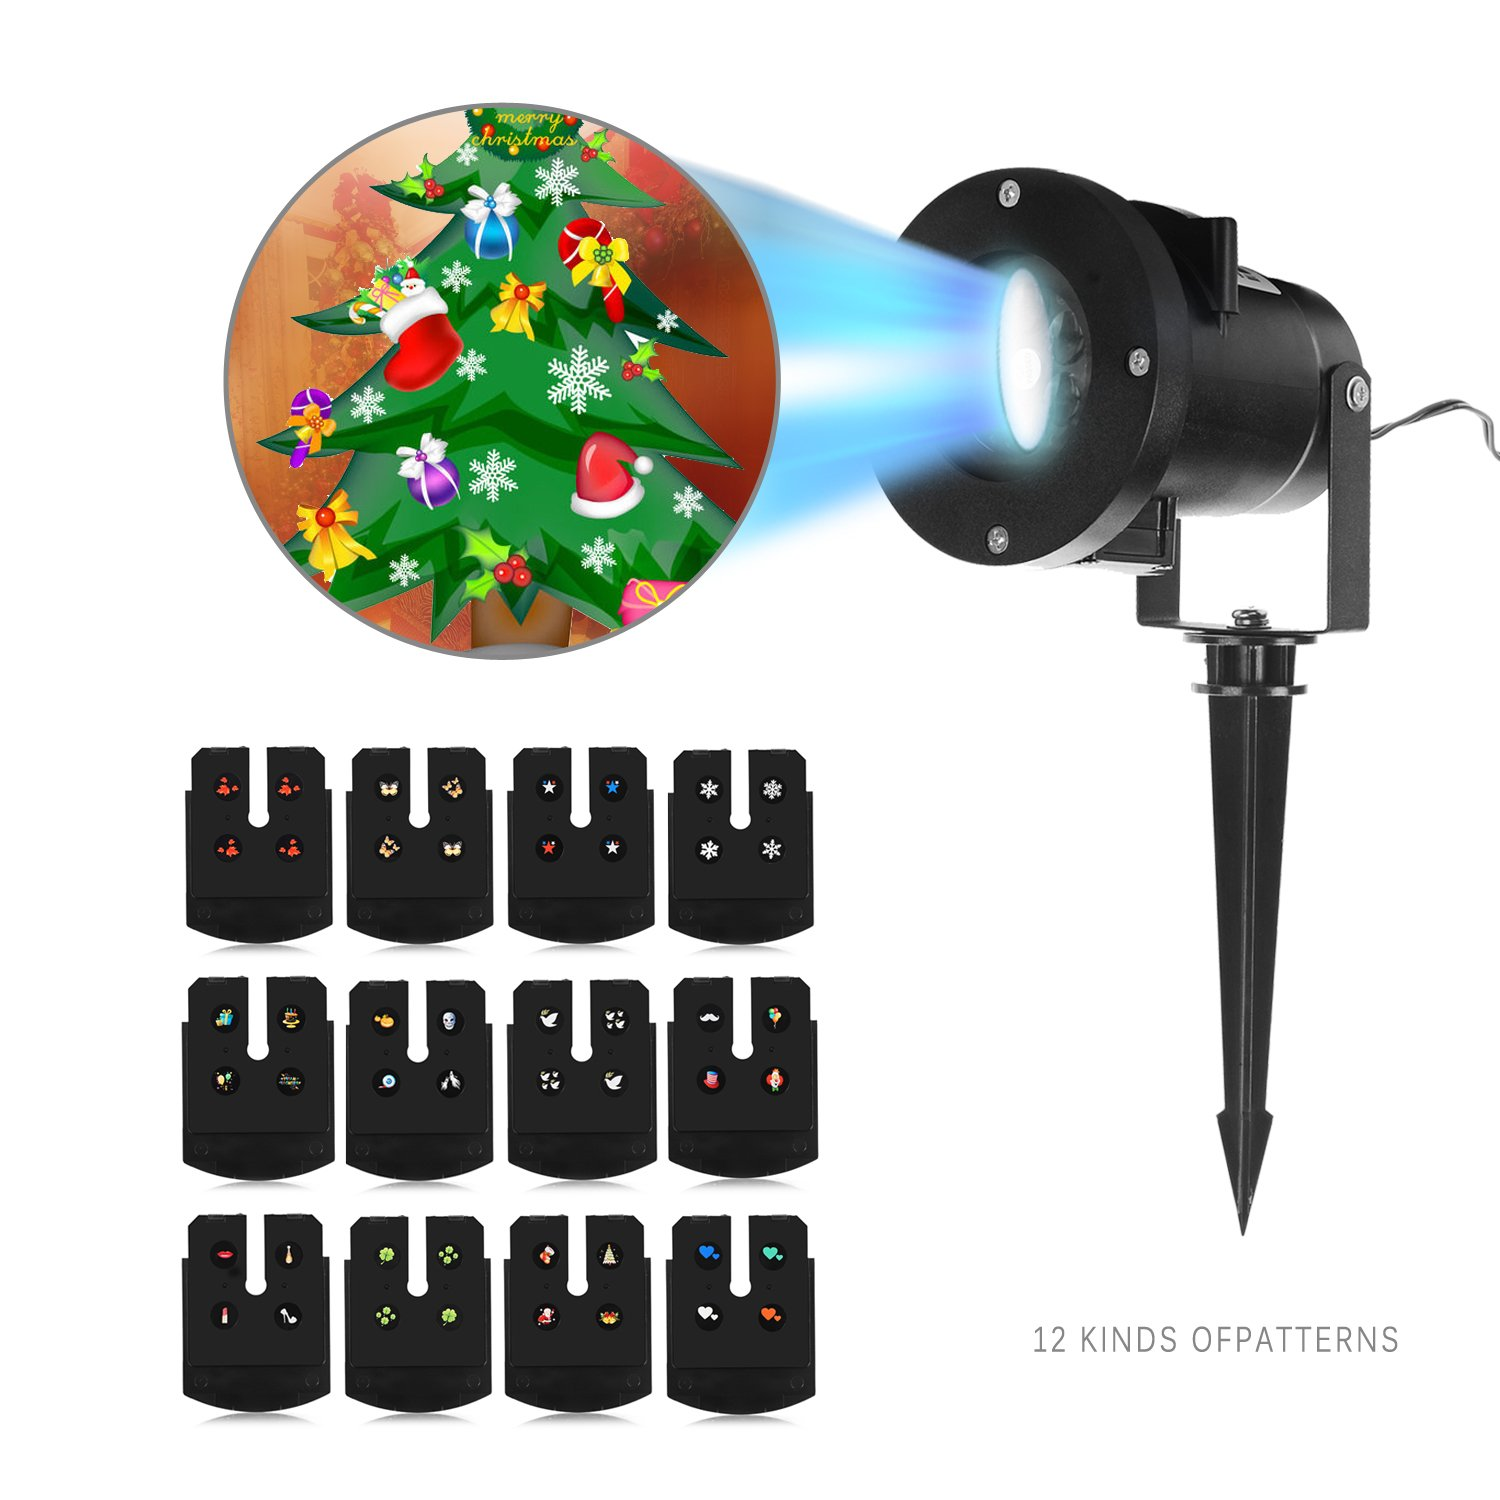 Outdoor Projector Lights, Komost LED Projector Lights with 12 Switchable Patterns, Indoor and Outdoor for Holiday Lanscape Decoration